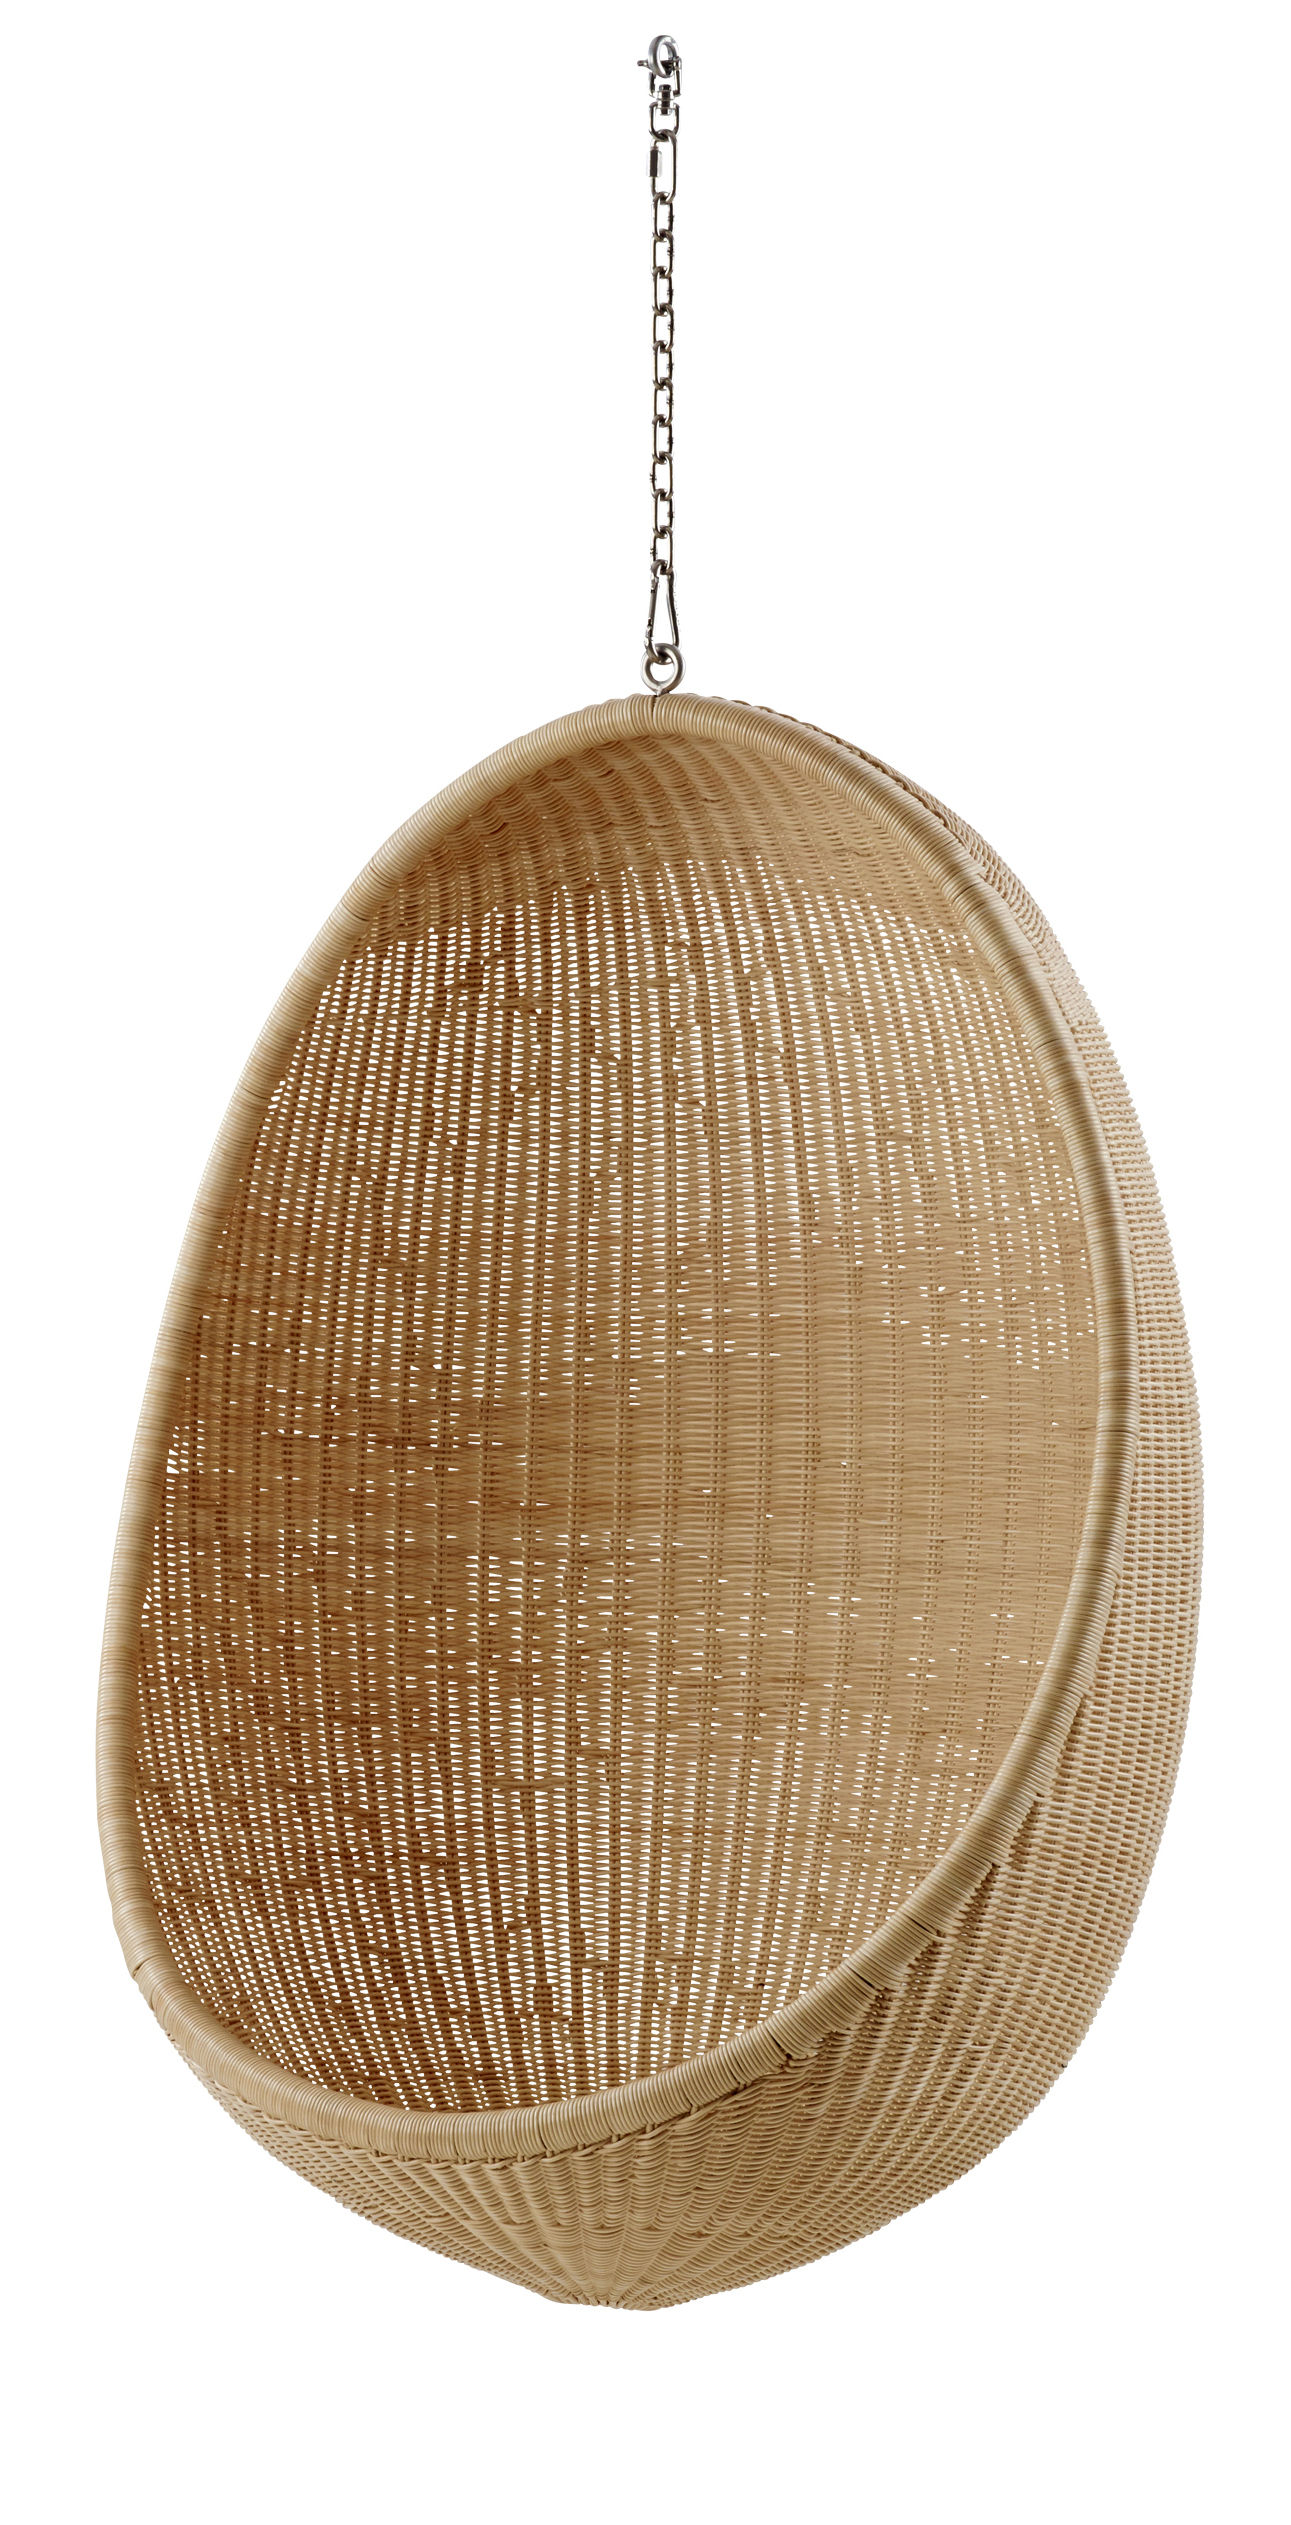 Product selections - Modern nature - Œuf Hanging armchair - Reissue 1959 by Sika Design - Armchair / natural - Rattan